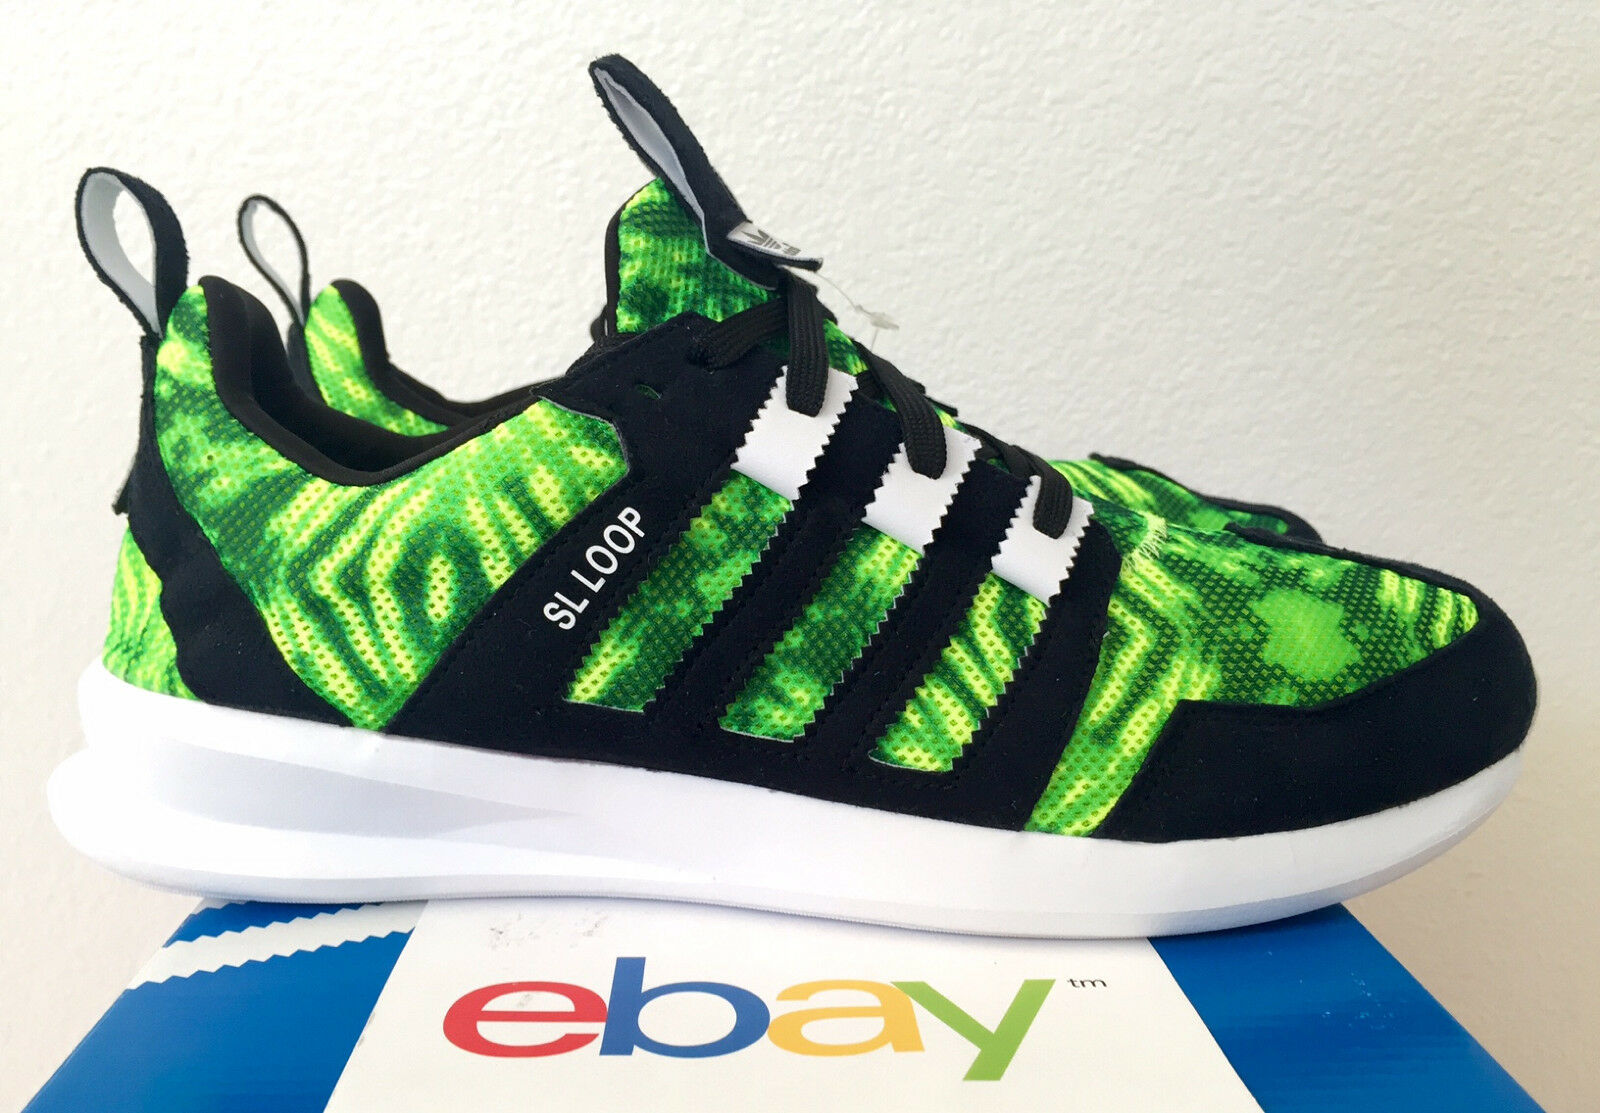 NEW ADIDAS SL LOOP RUNNER GREEN CAMO SIZE 8-13 black lime flux zx boost white